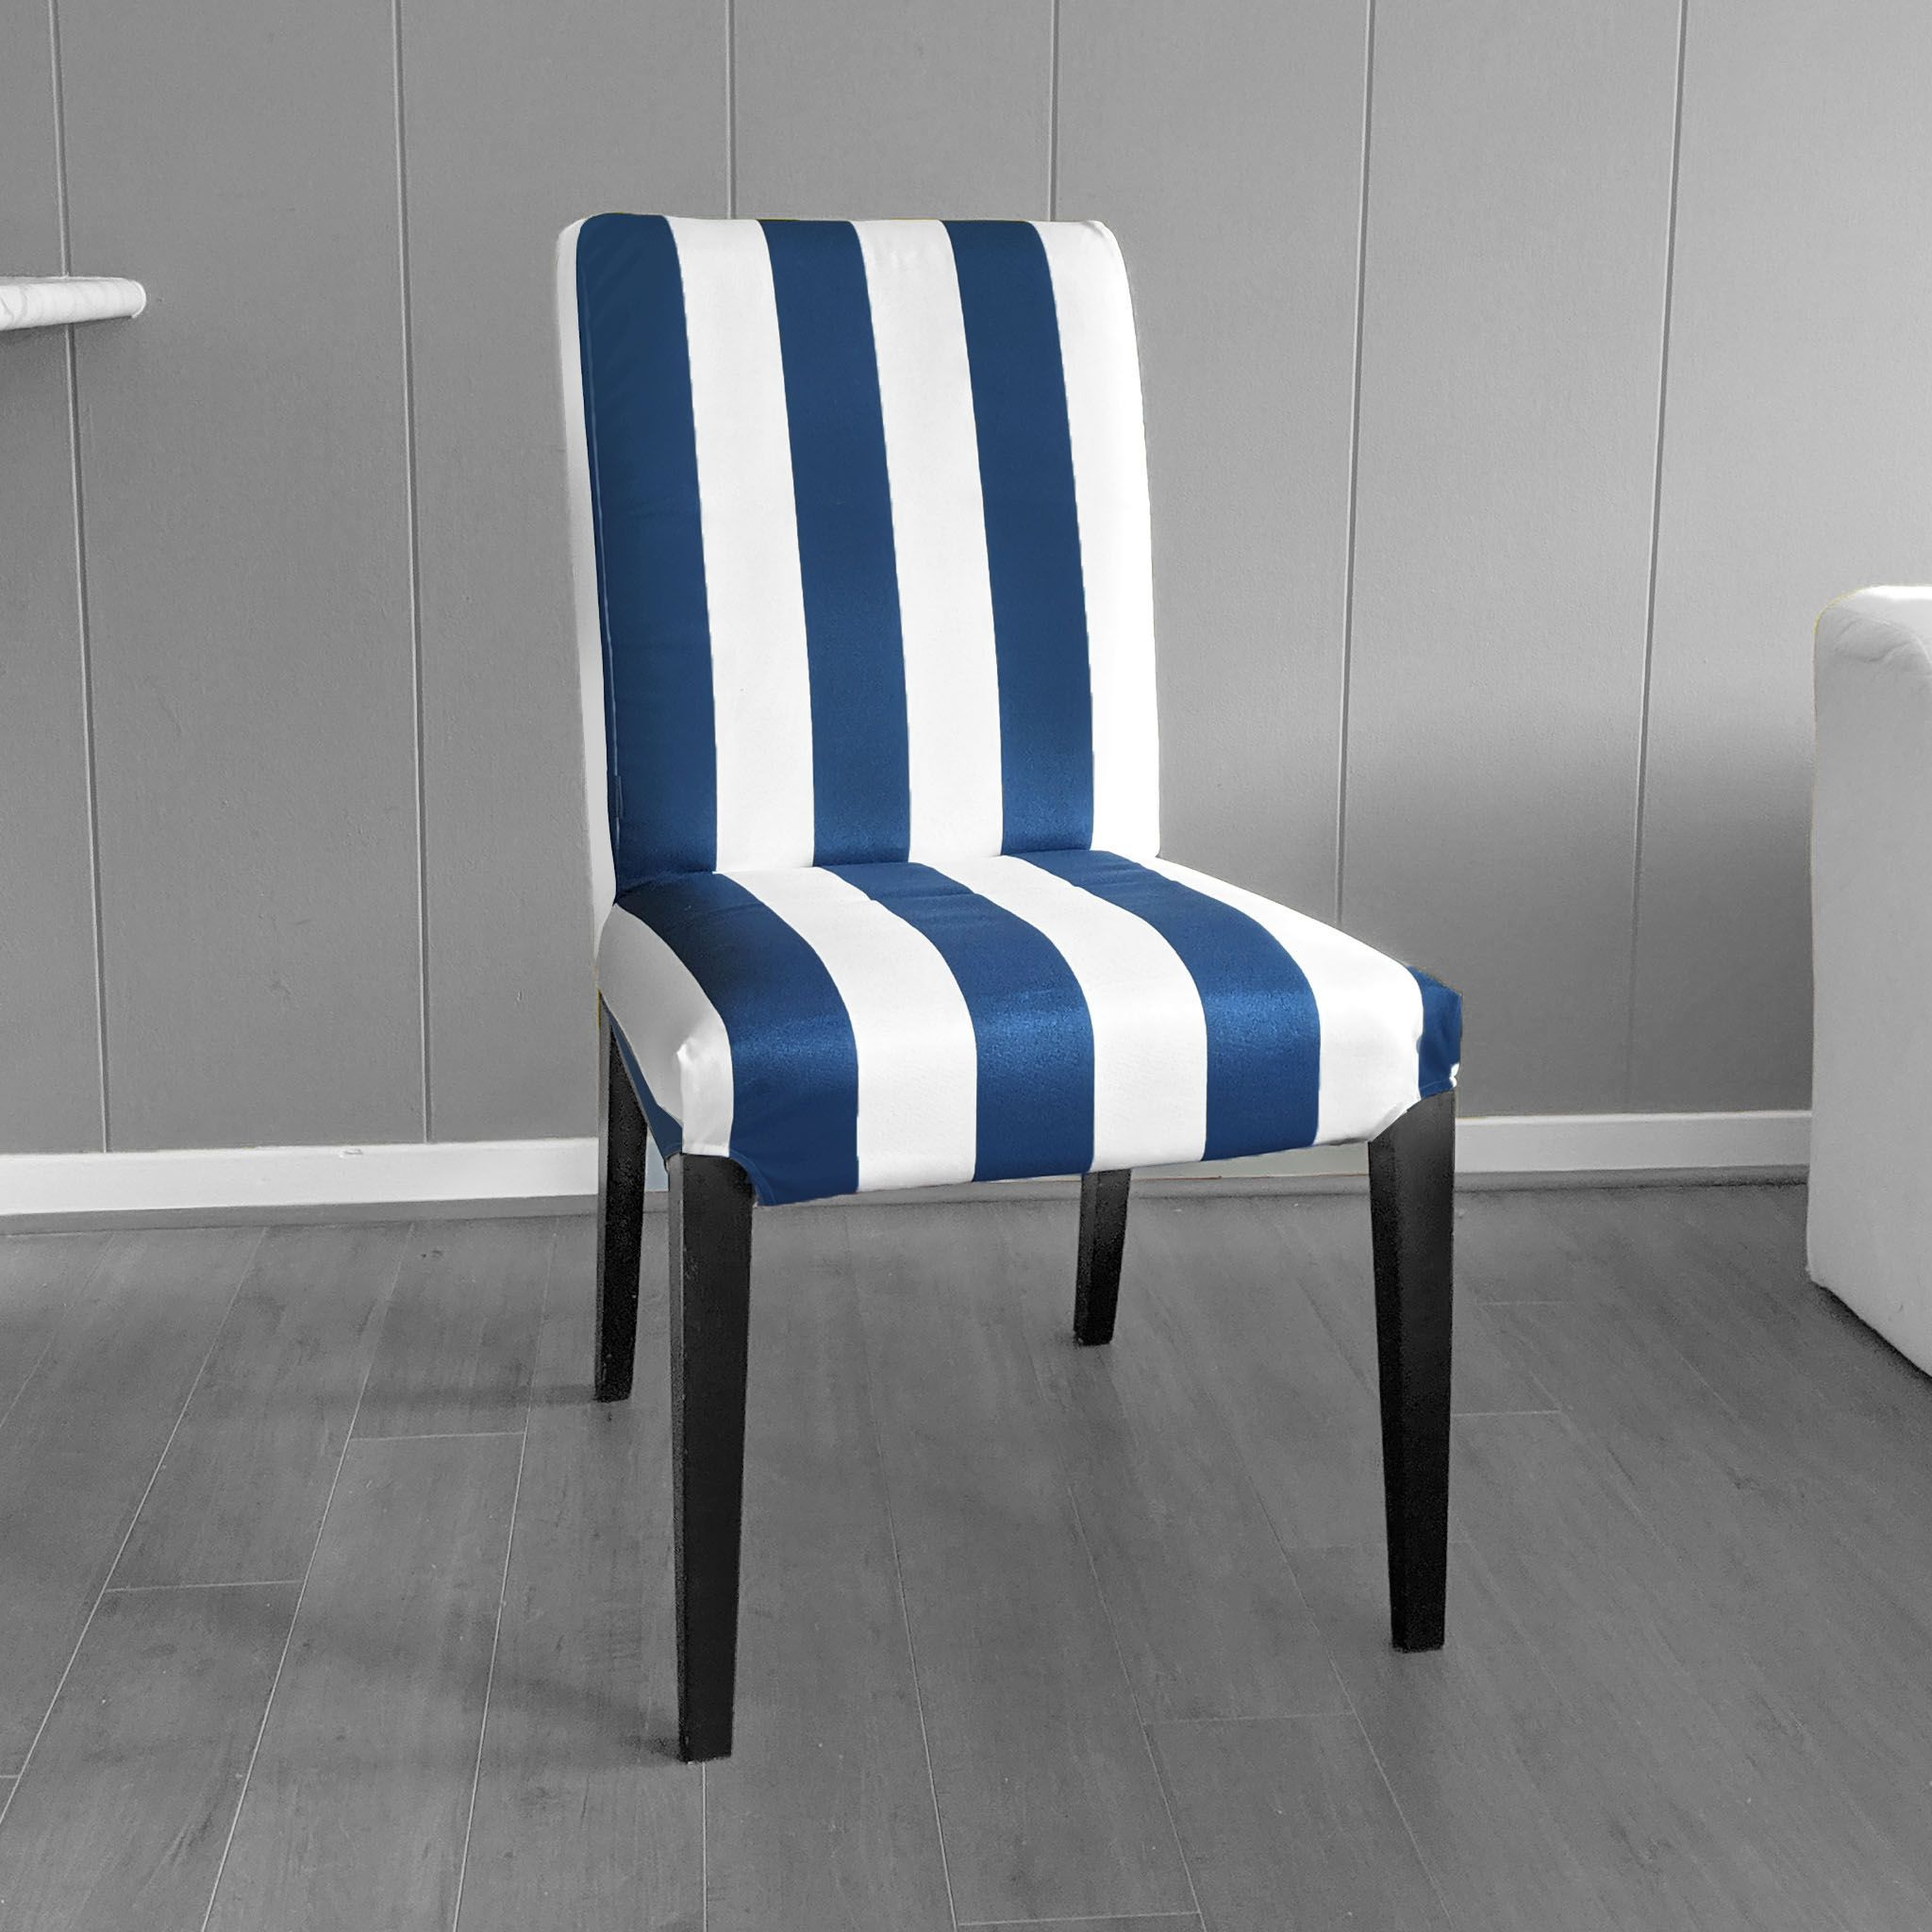 Fanback Chair With Navy Stripe: IKEA Henriksdsal Dining Chair Cover, Navy Blue Cabana